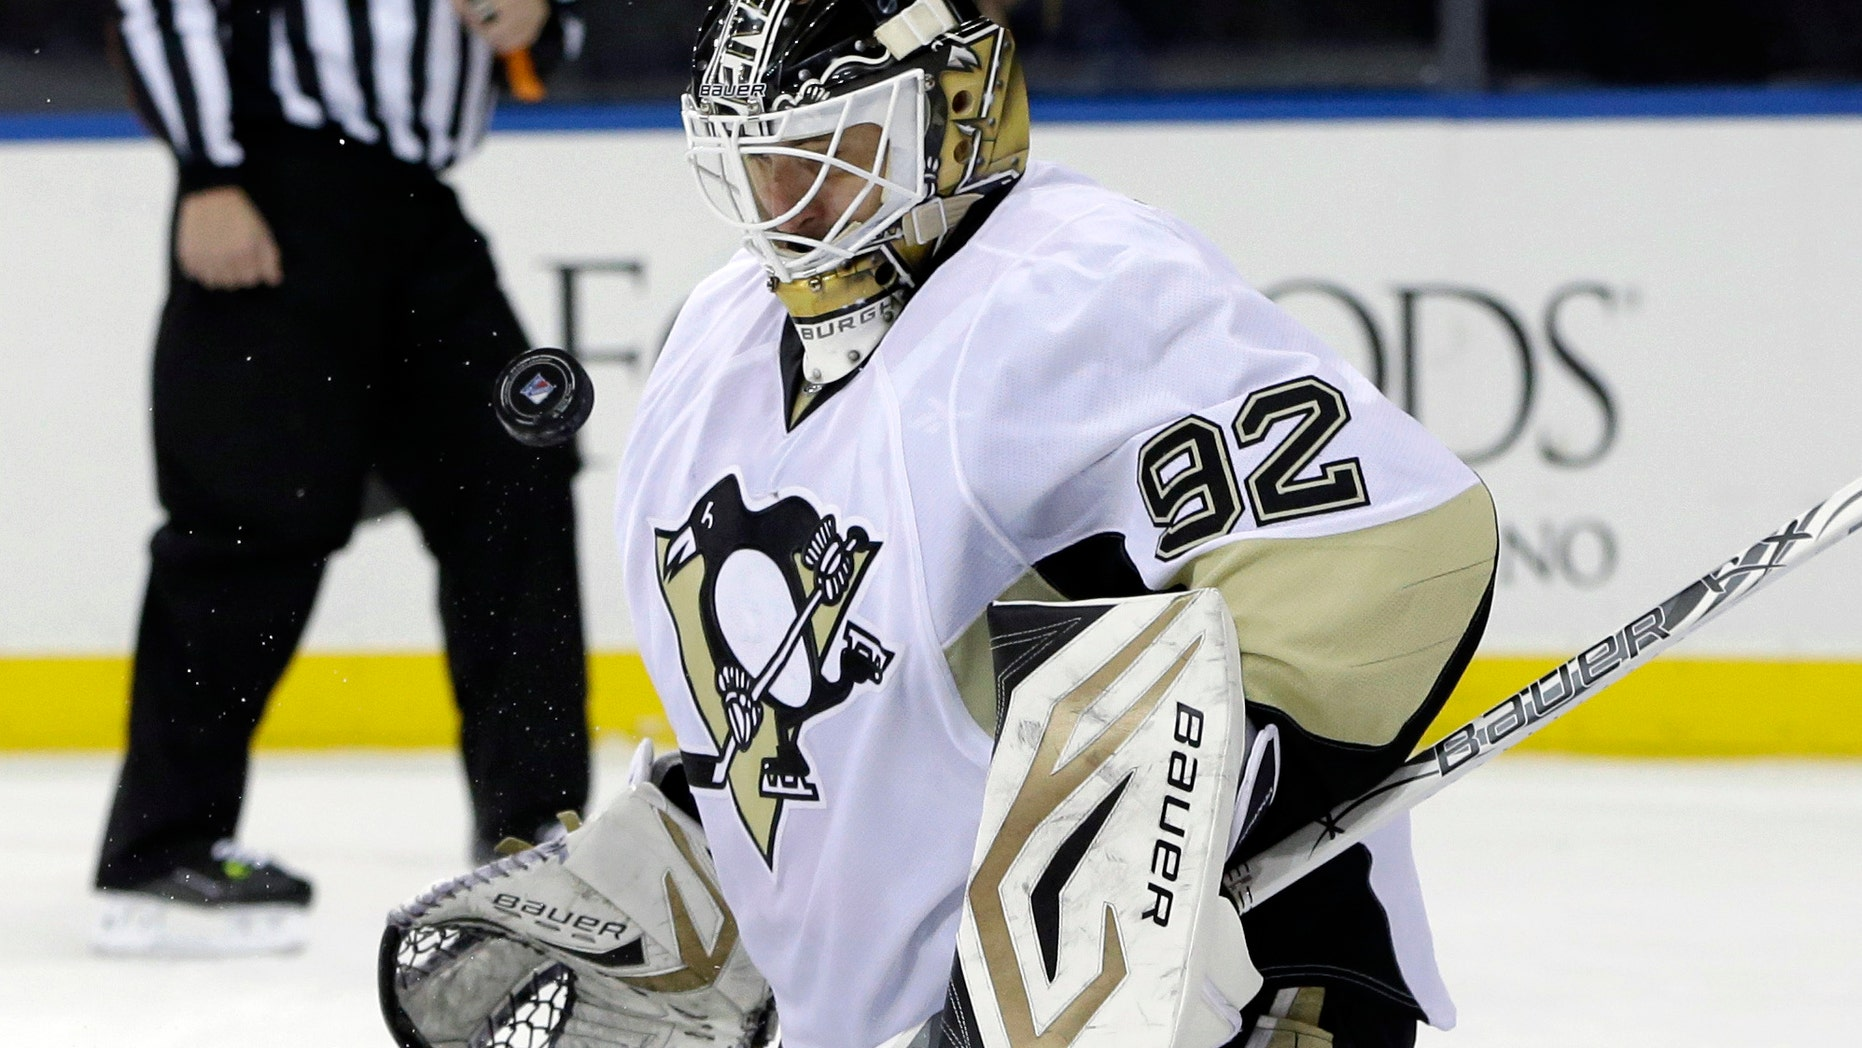 Pittsburgh Penguins goalie Tomas Vokoun (92), of Czech Republic, makes a save in the second period of their NHL hockey game against the New York Rangers in New York, Thursday, Jan. 31, 2013. The Penguins shutout the Rangers 3-0. (AP Photo/Kathy Willens